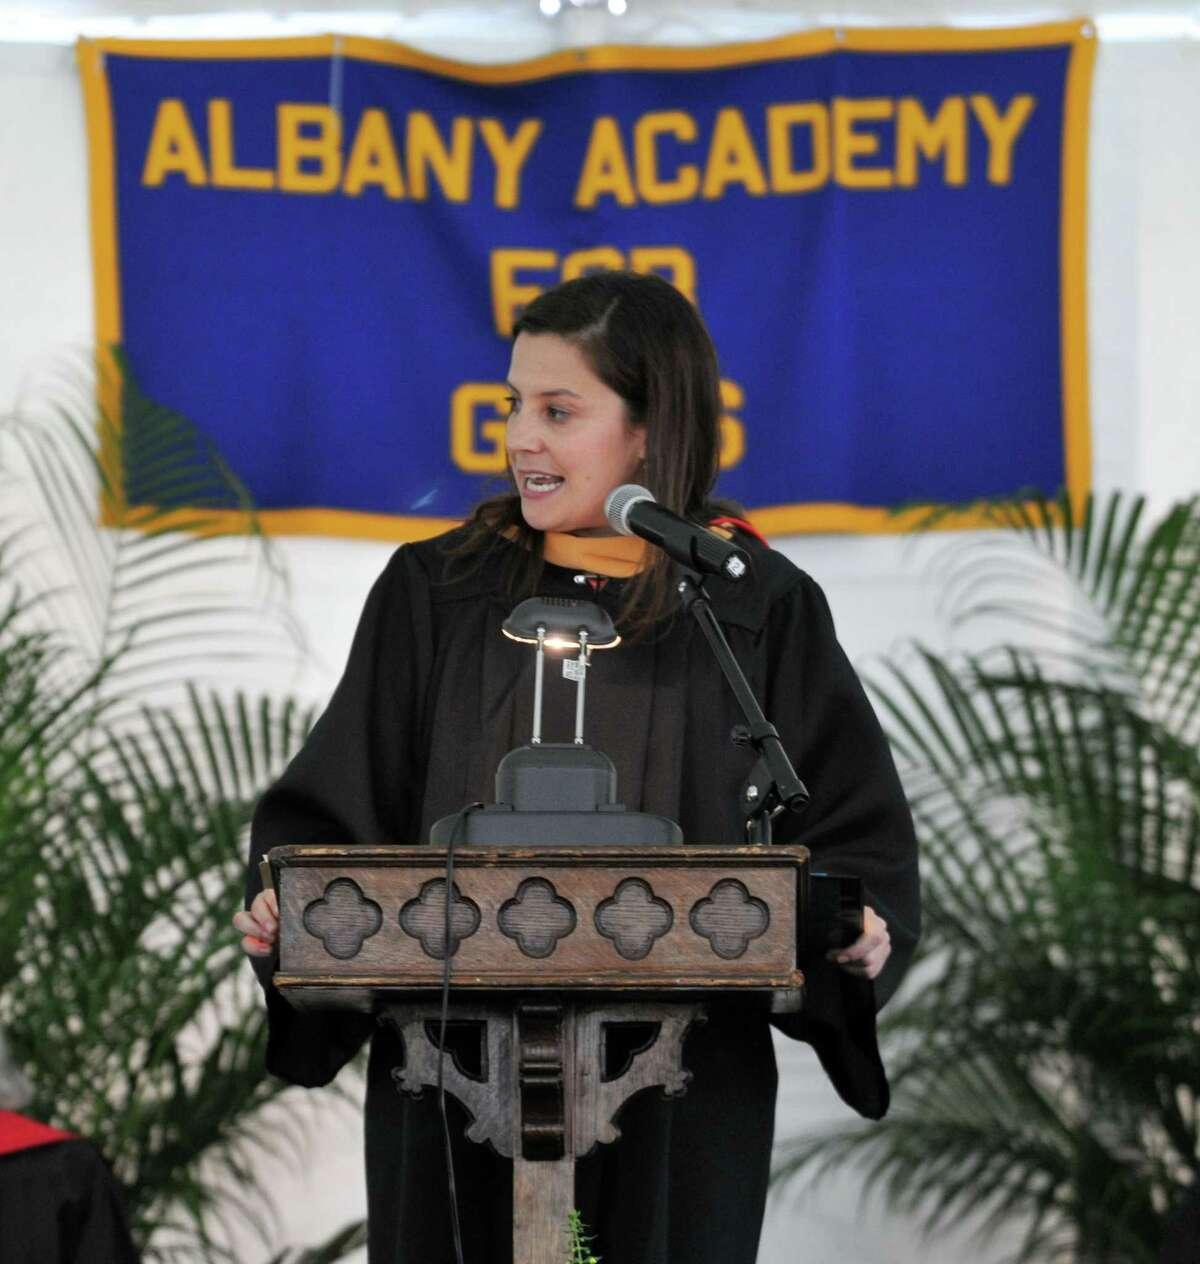 Congresswoman and Albany Academy for Girls alumna, Elise Stefanik, delivers the commencement address during graduation on Monday, June 13, 2016, in Albany, N.Y.